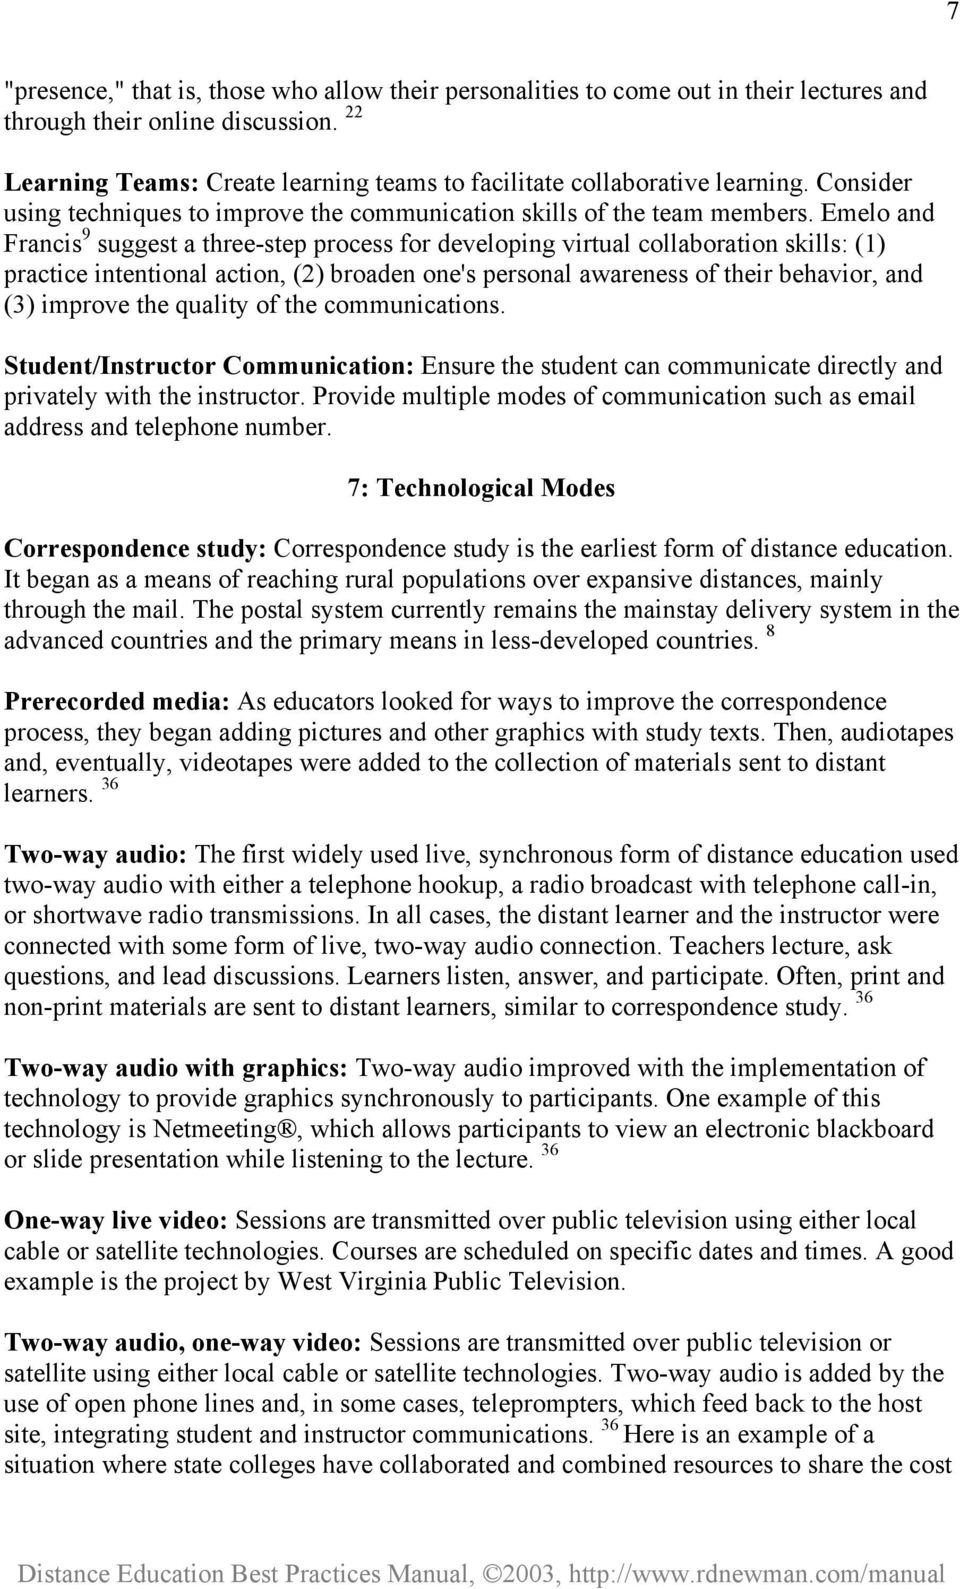 Emelo and Francis 9 suggest a three-step process for developing virtual collaboration skills: (1) practice intentional action, (2) broaden one's personal awareness of their behavior, and (3) improve